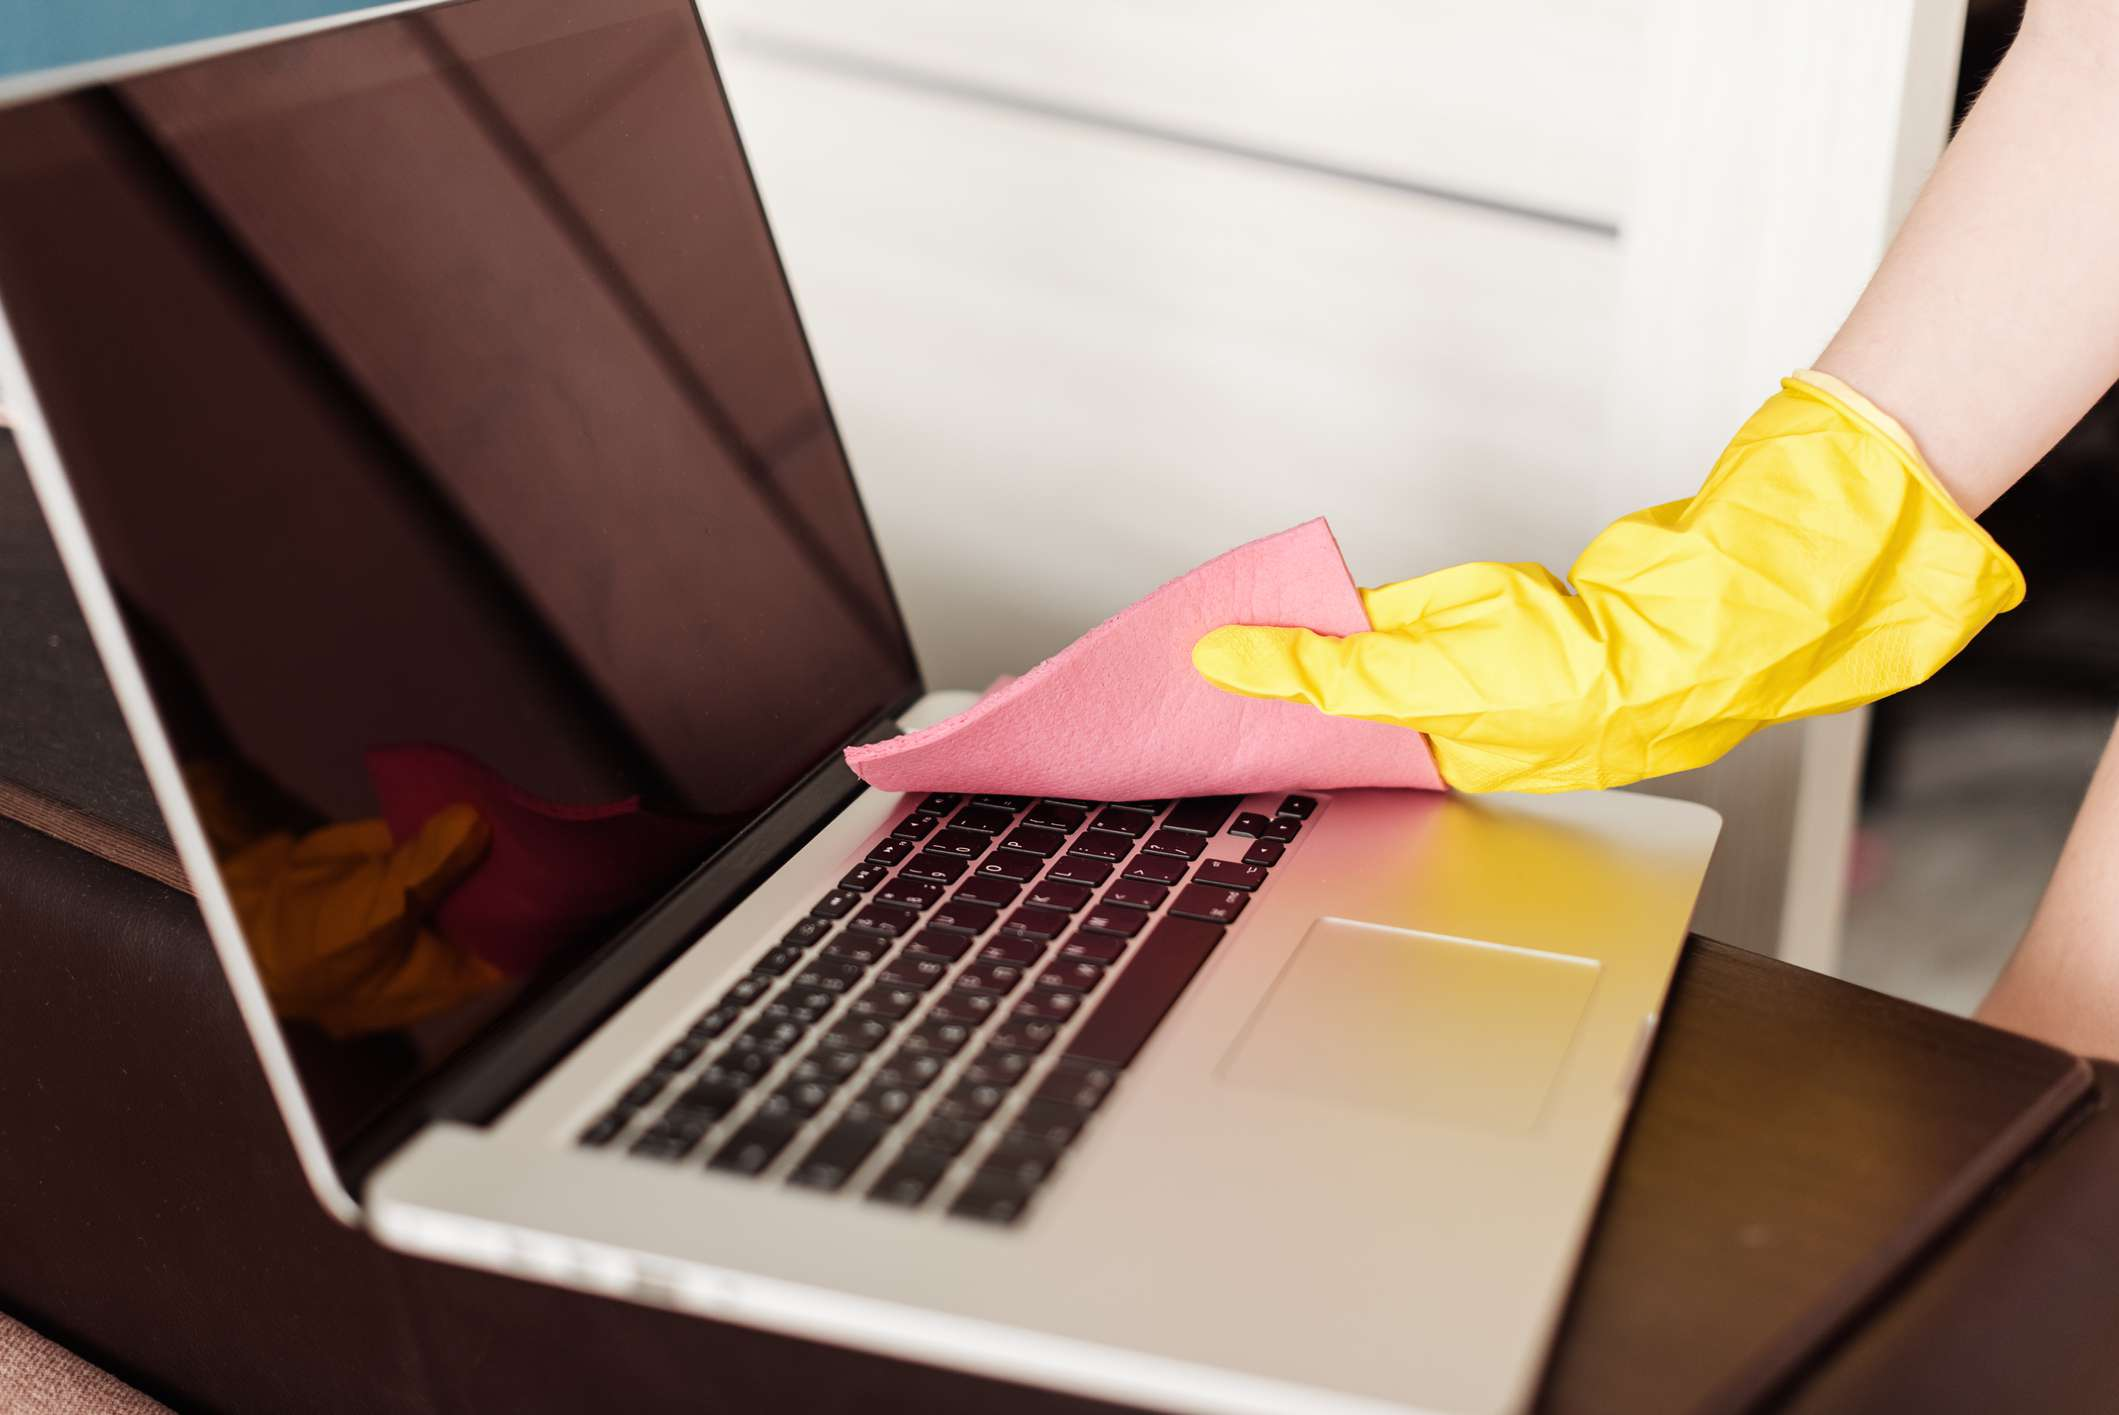 Cleaning the surface of a MacBook